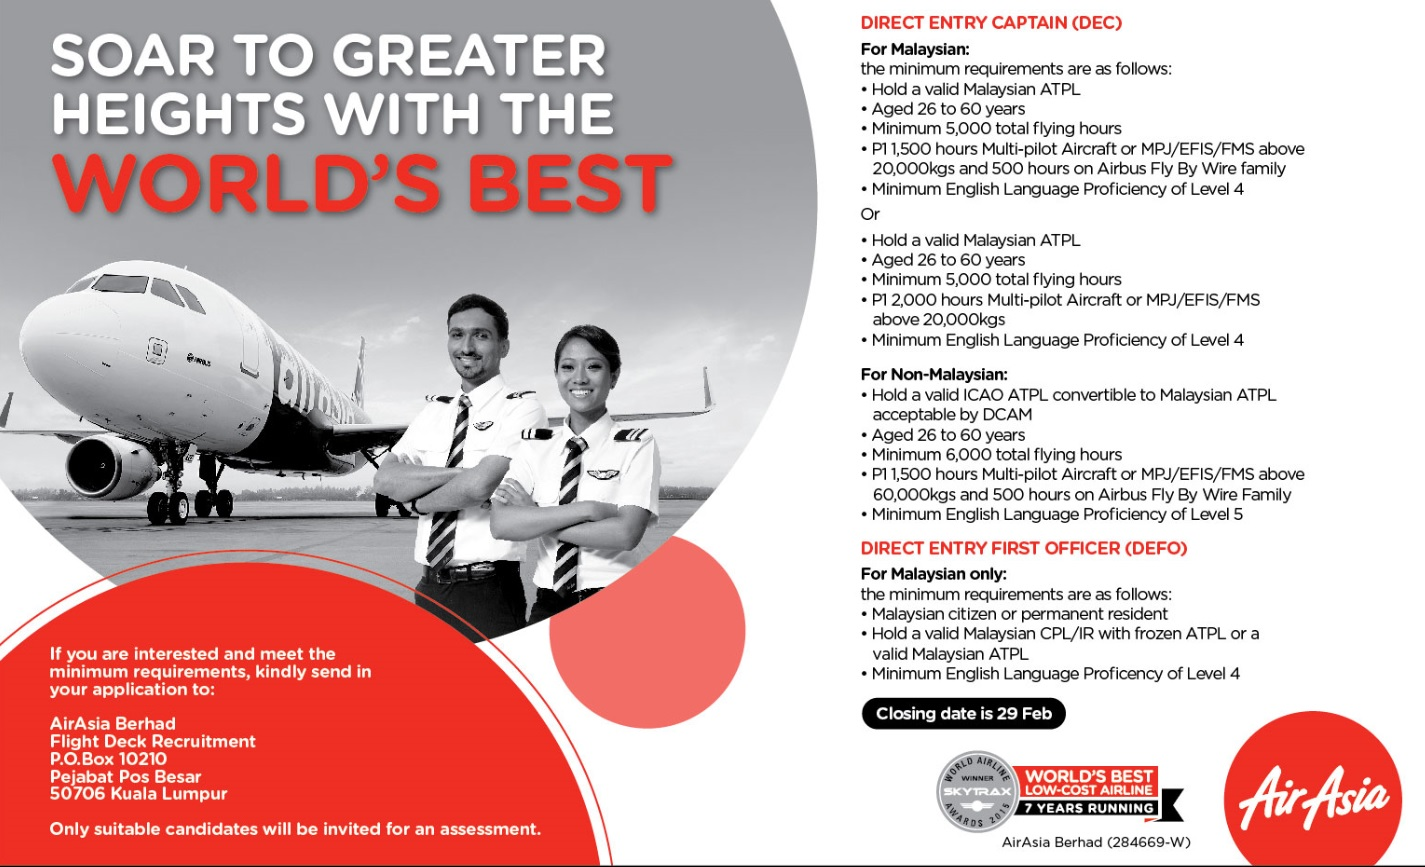 air asia an introduction We are airasia, the world's best low-cost airline we have revolutionized air  travel by offering only the lowest fares to over 100 destinations across asia.